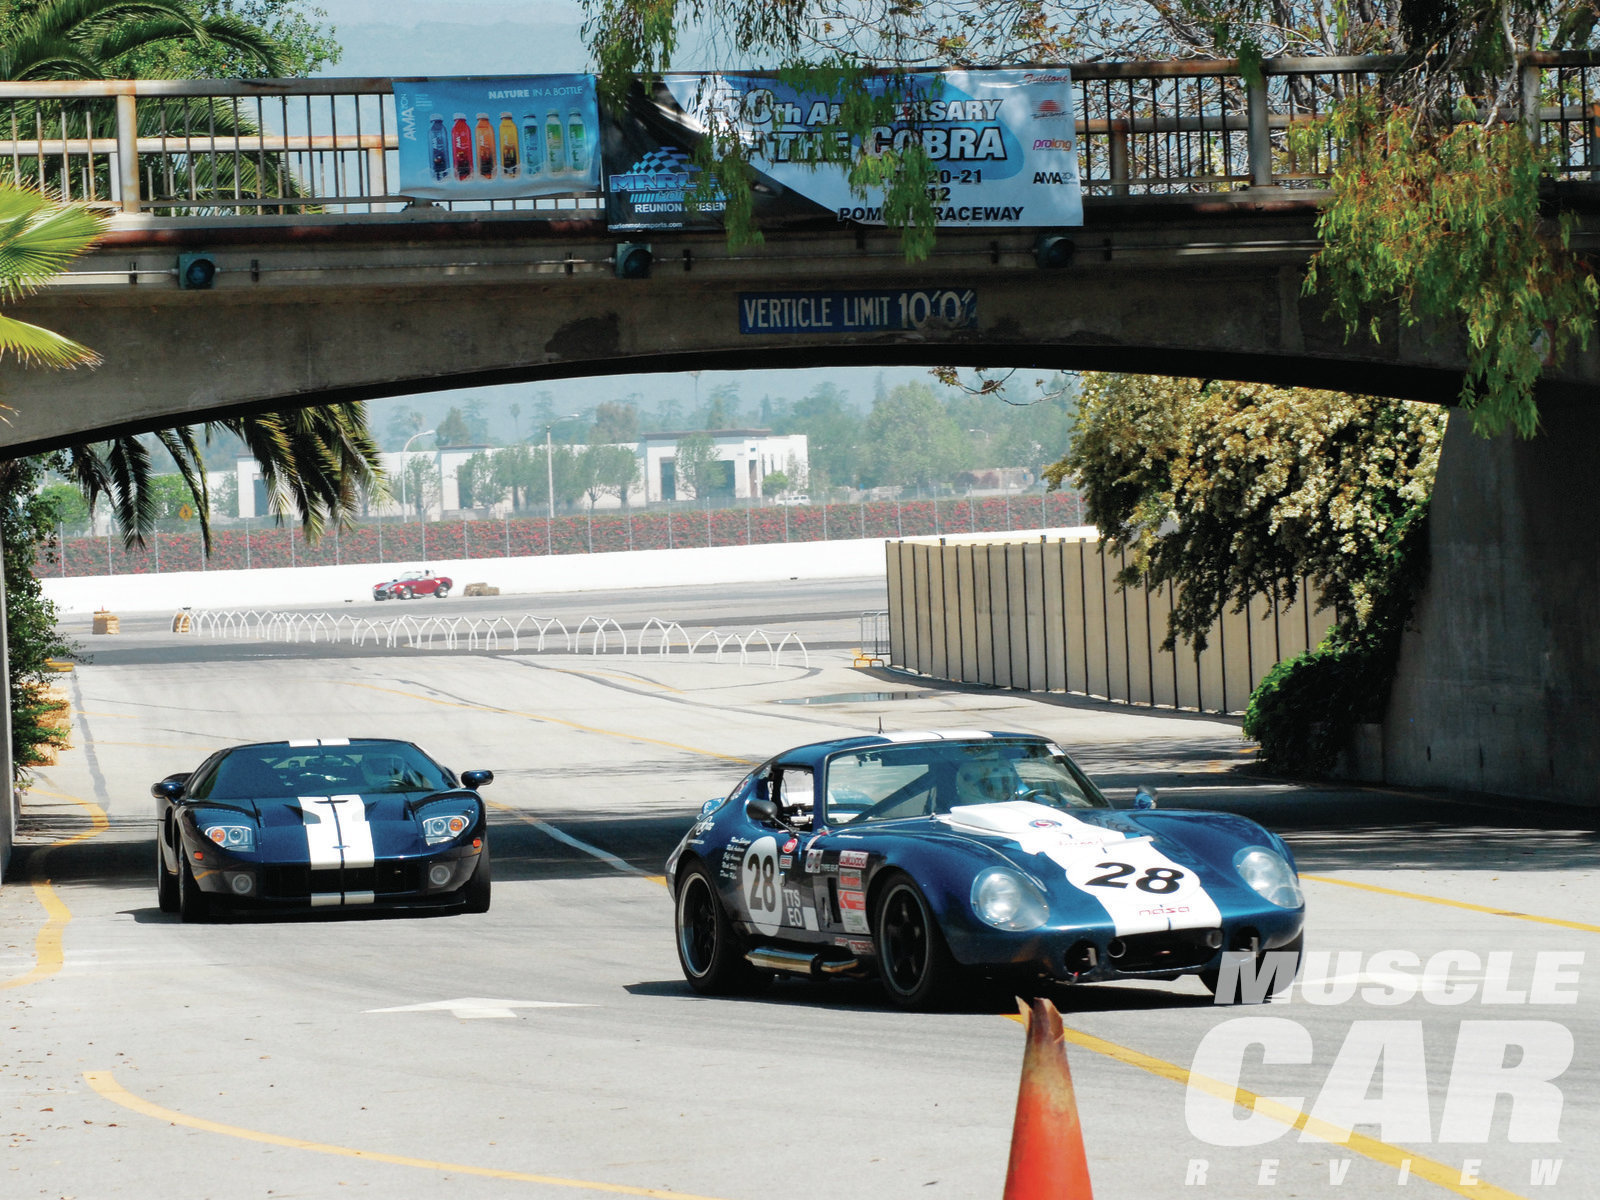 This Cobra Daytona coupe replica, driven by Karen Salvaggio, is being chased under the Los Angeles Fairplex crossover bridge by the Ford GT of Kevin Roberts.